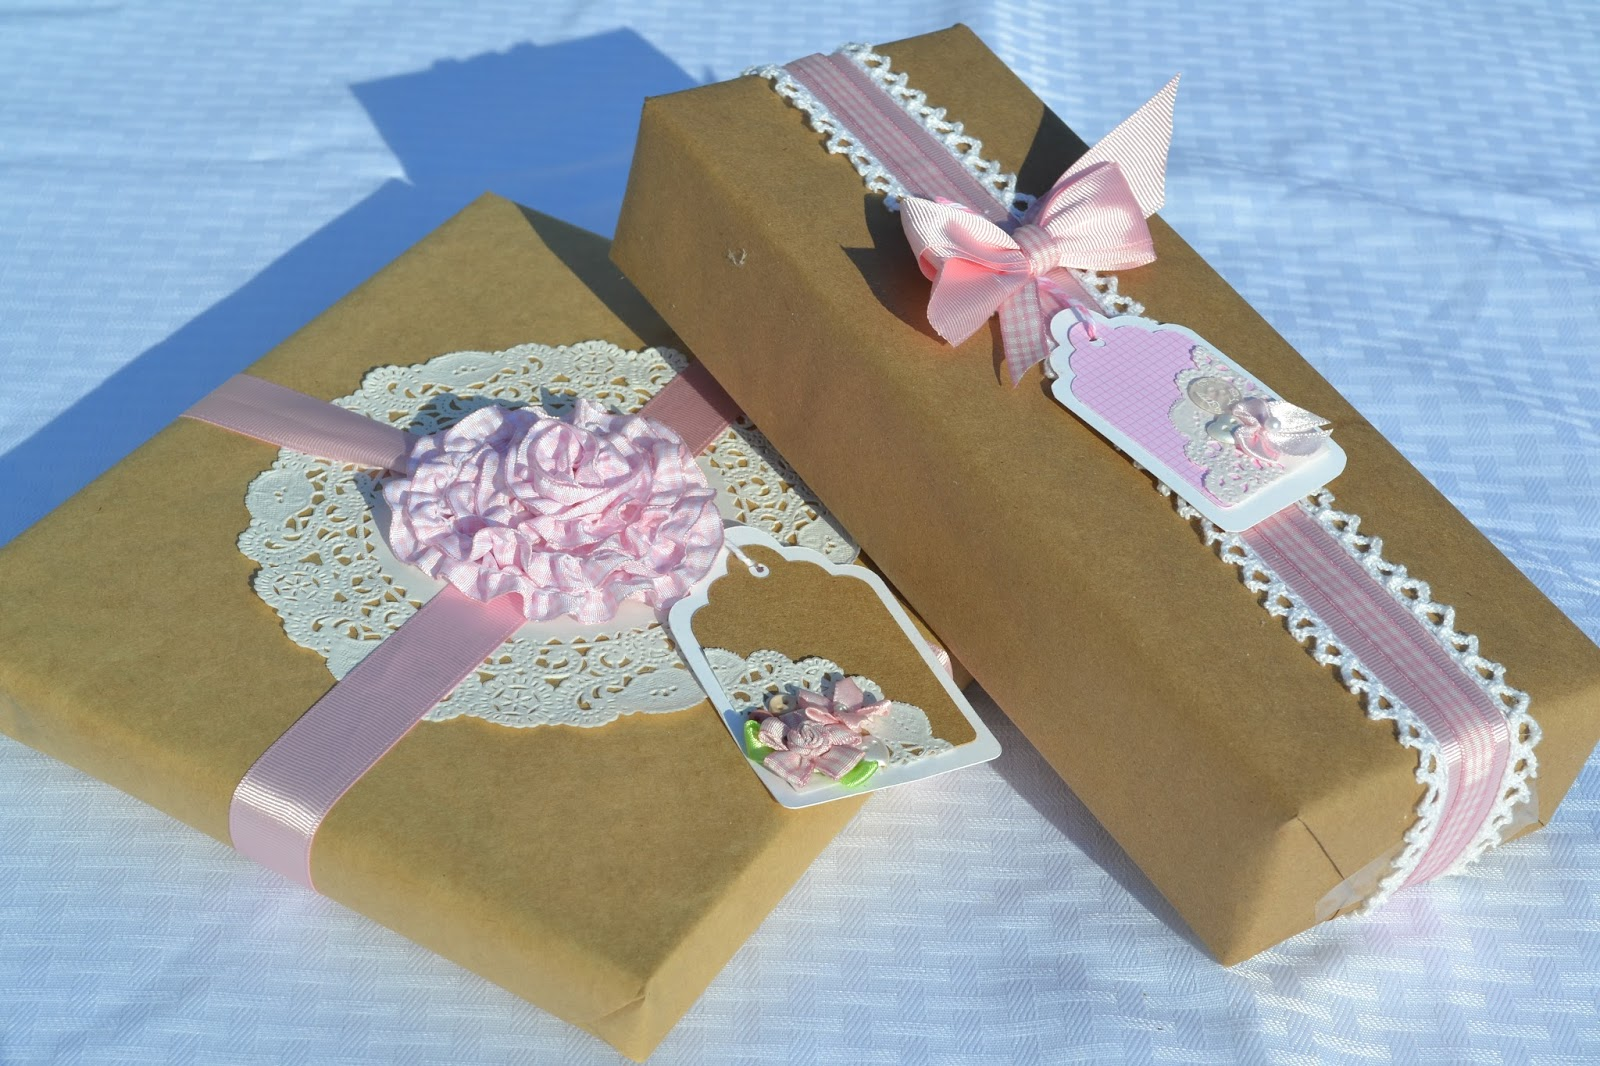 Baby Shower Gift Packaging Ideas : Corner of plaid and paisley gift wrapping posts